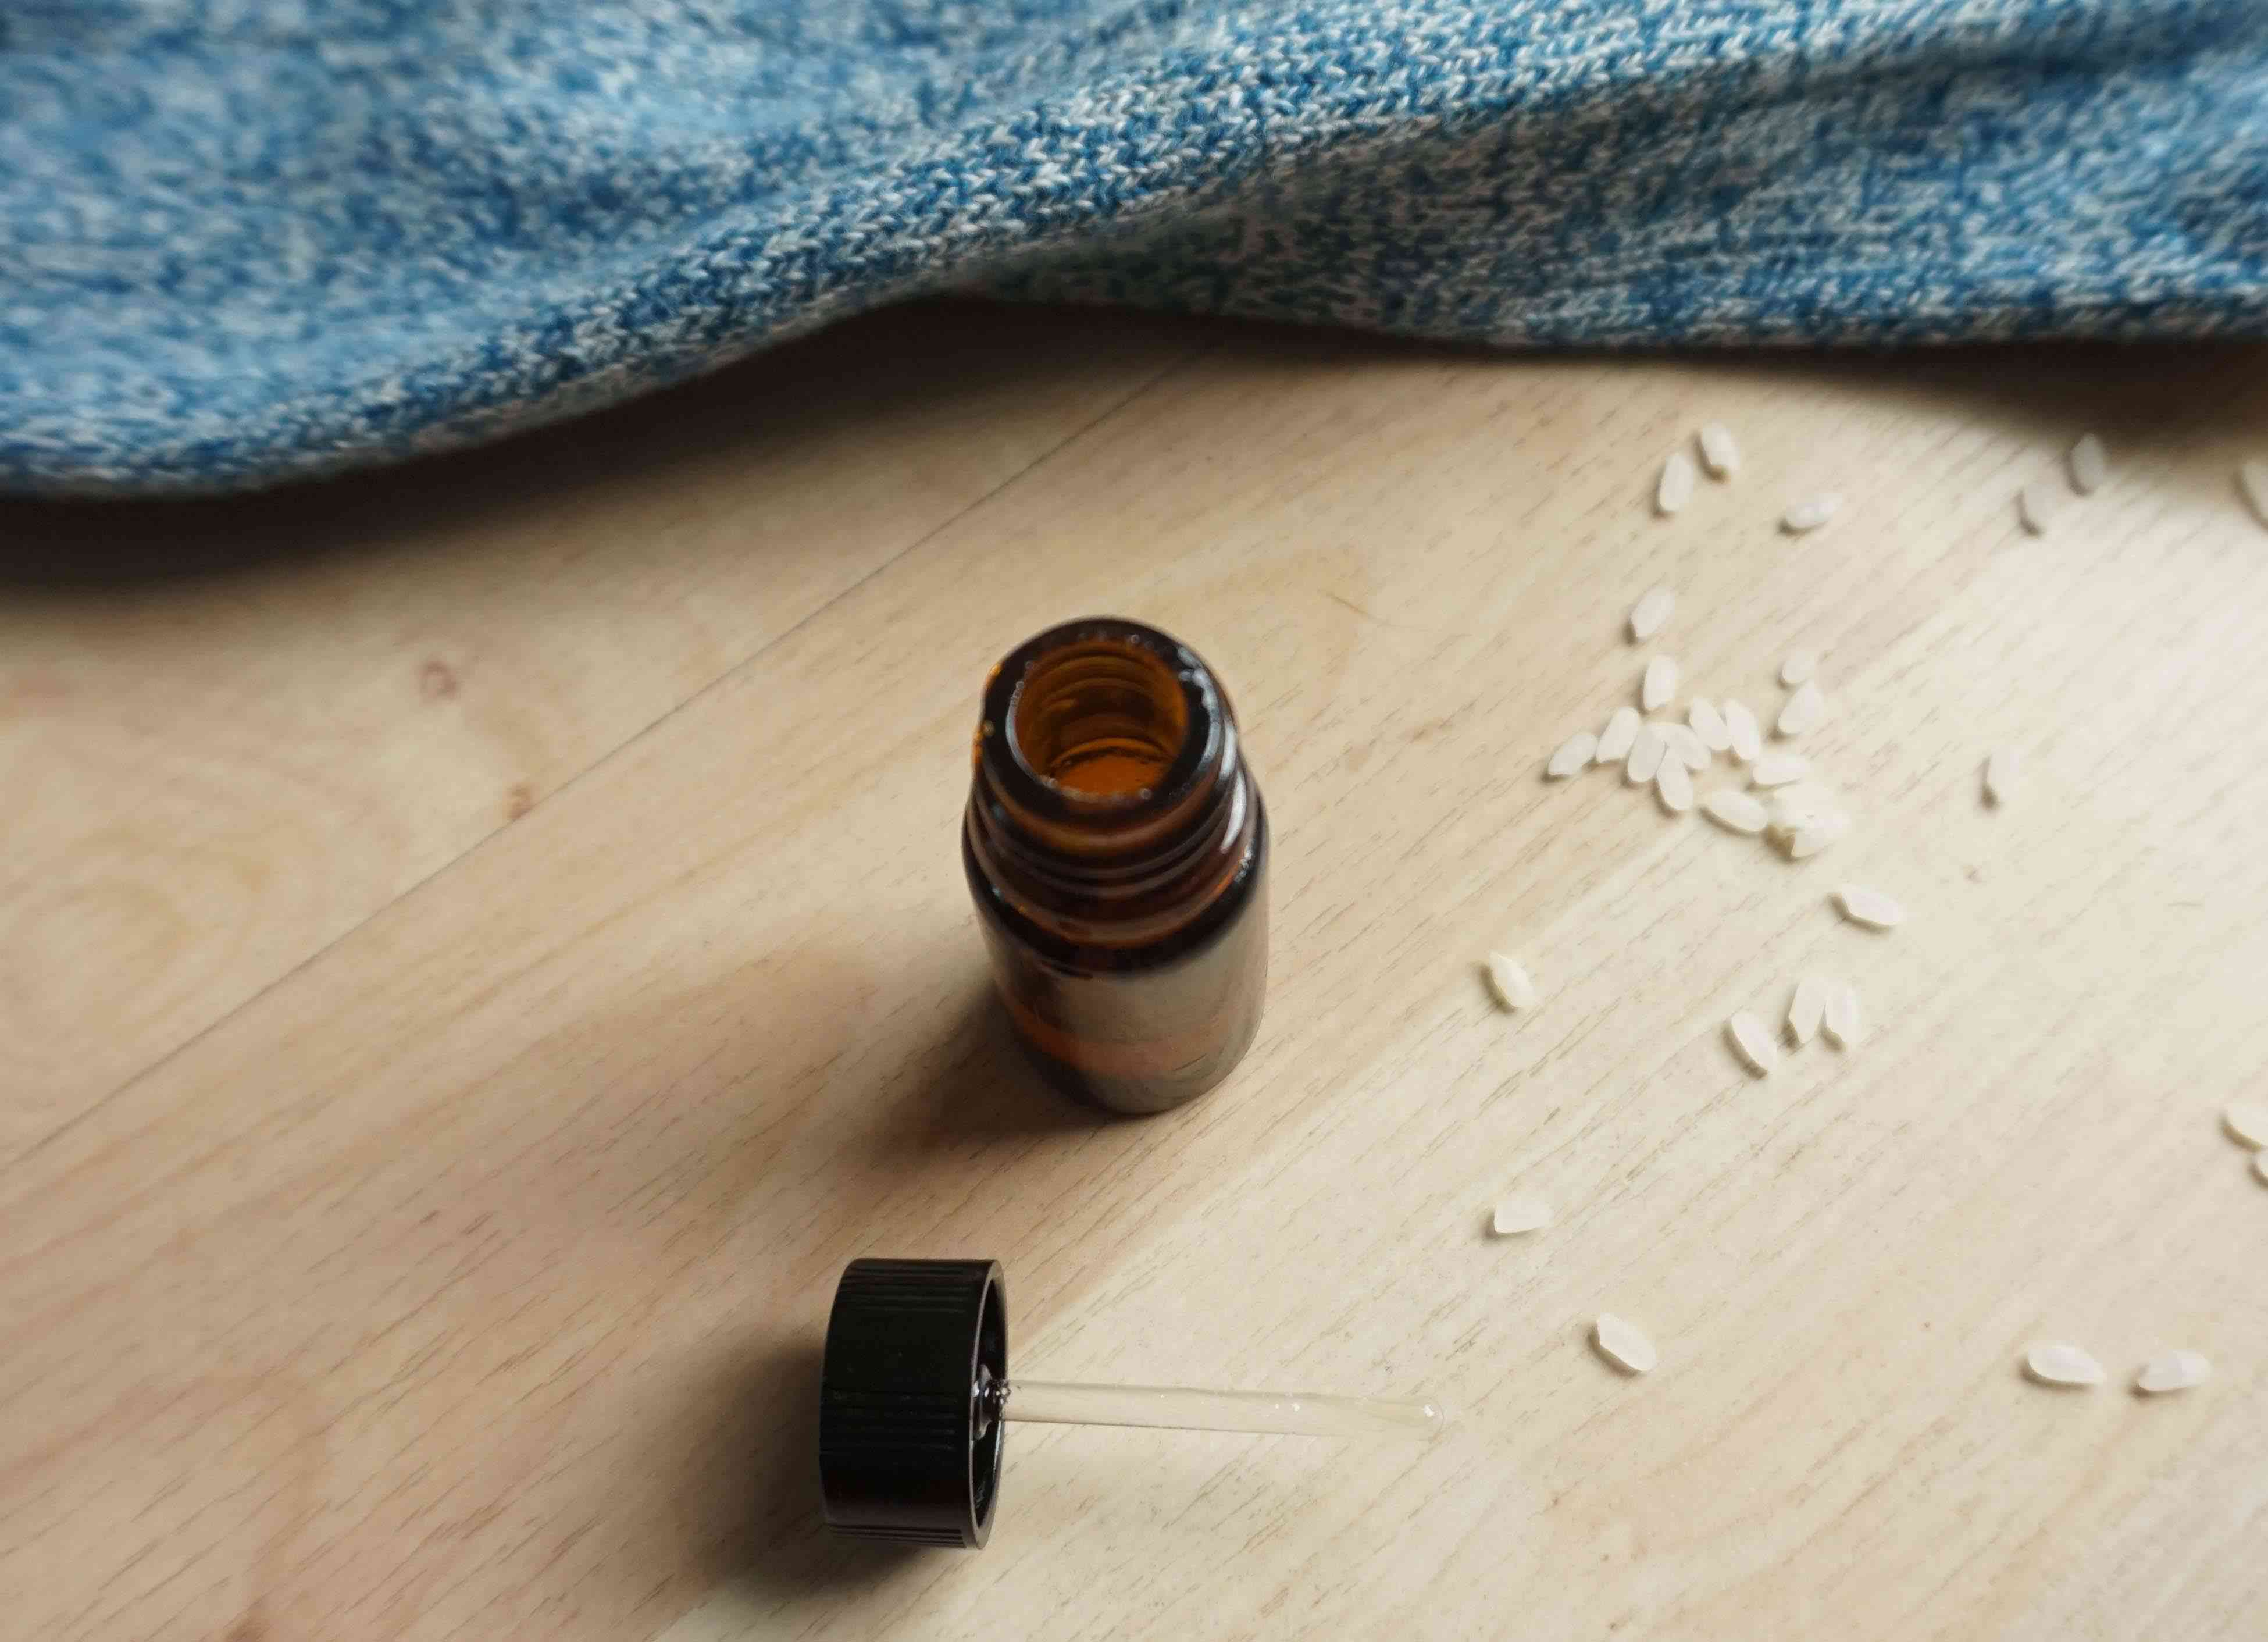 An open bottle of essential oil on a light wood background next to grains of rice and blue fabric.